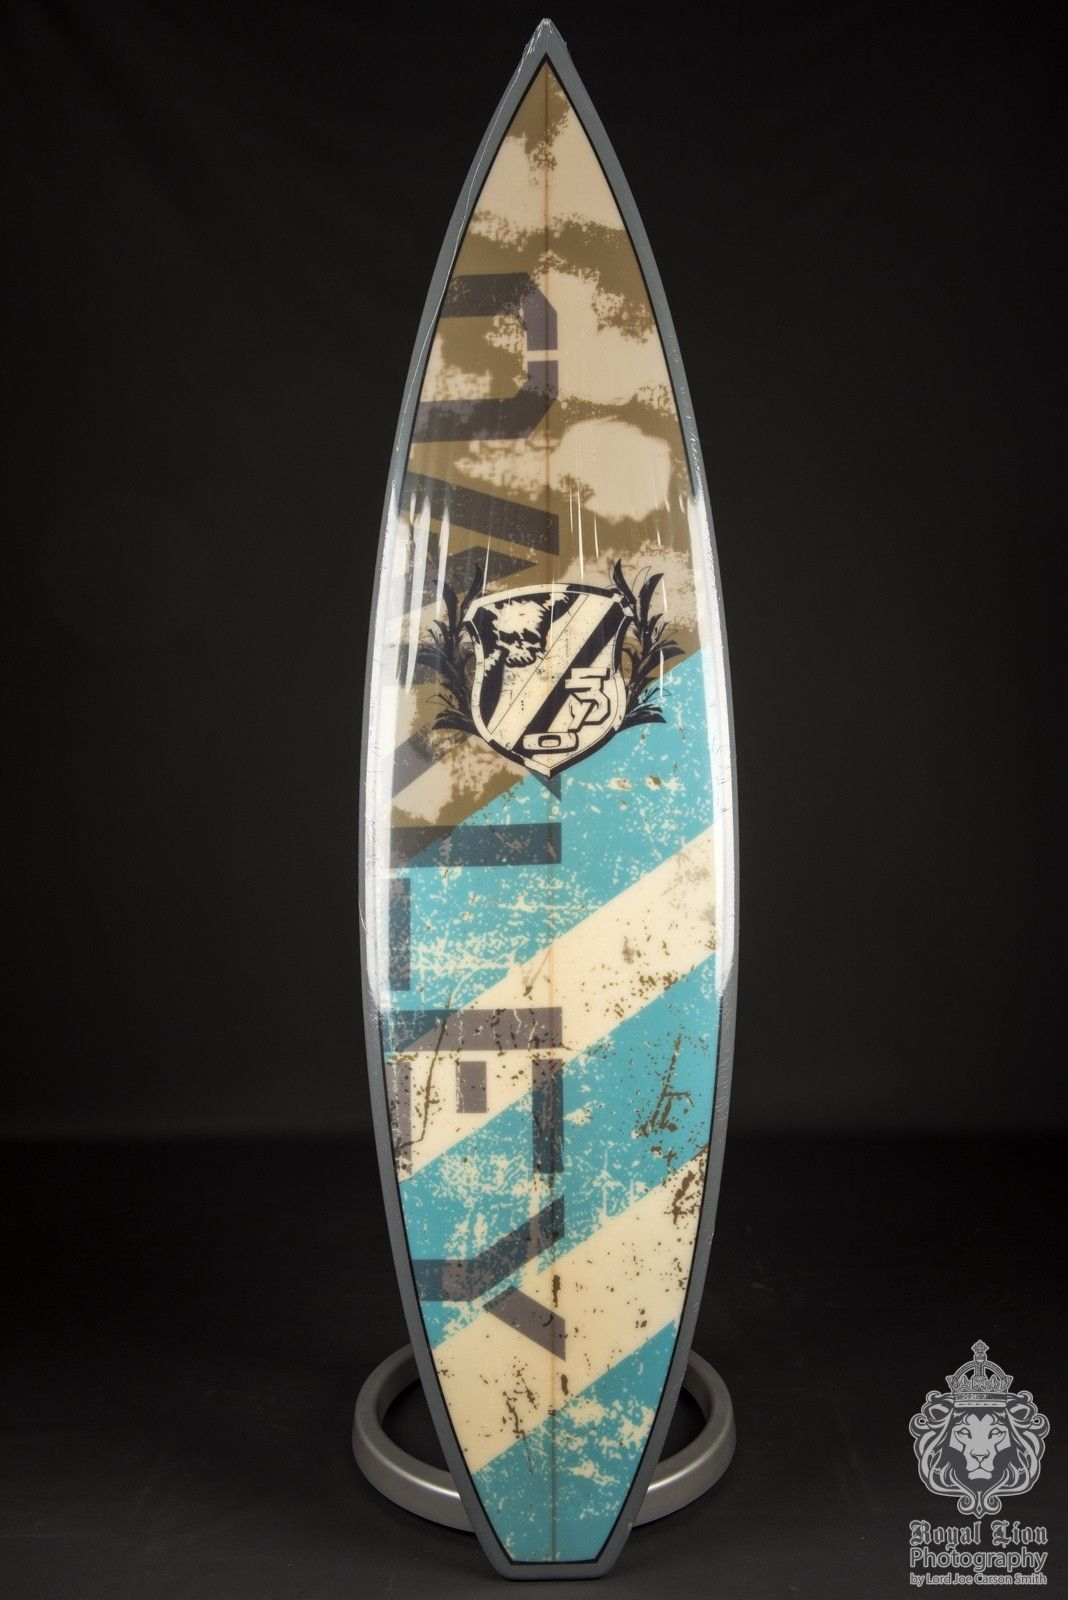 Flying Tiger Surfboard - Still in Shrink Wrap - Price Drop - ND8_3456.jpg